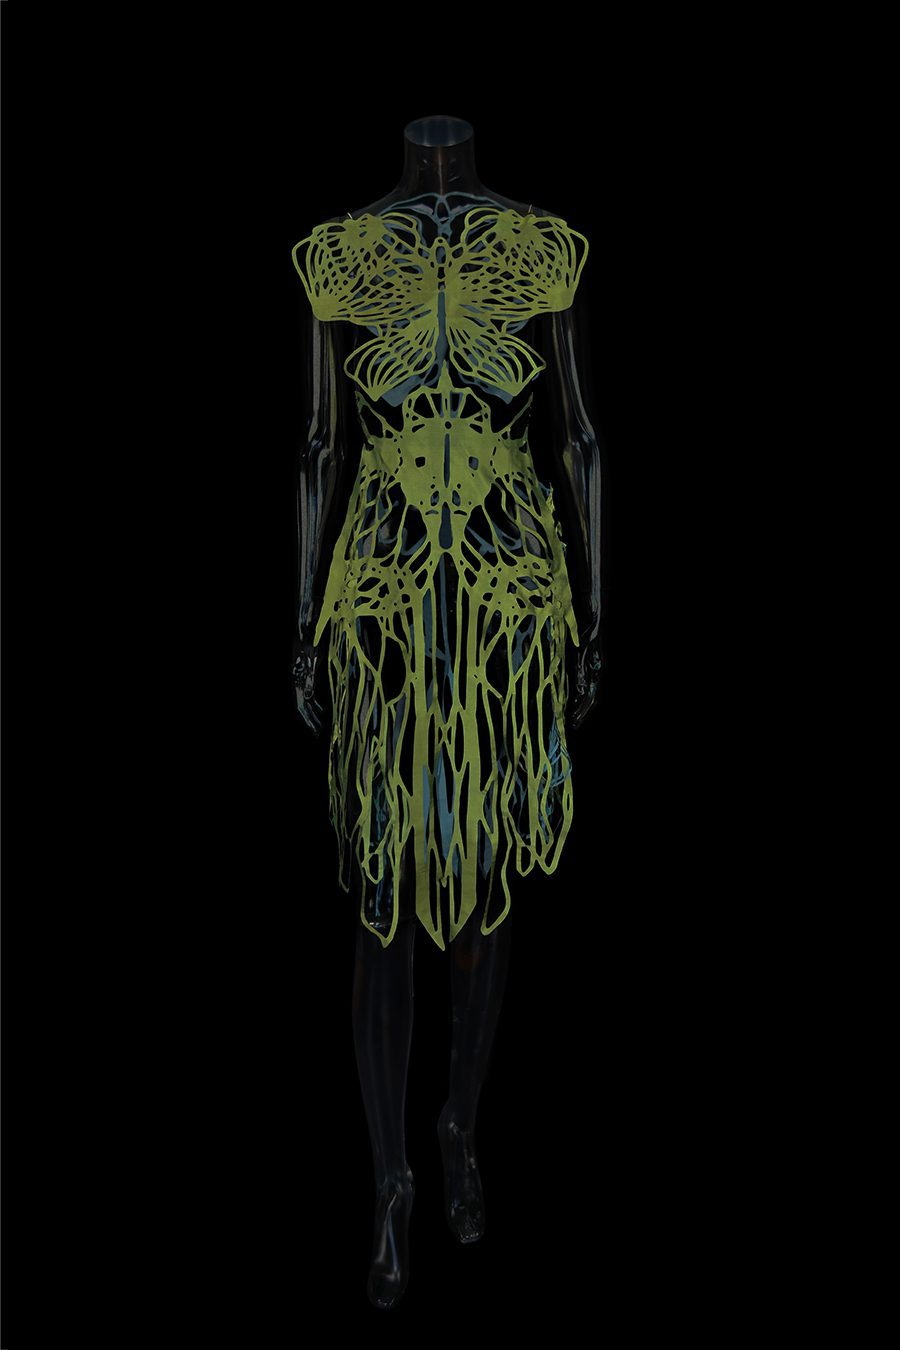 2017-Amy-Karle-Internal-Collection-green-silk-dress-based-on-ligaments-and-tendons04